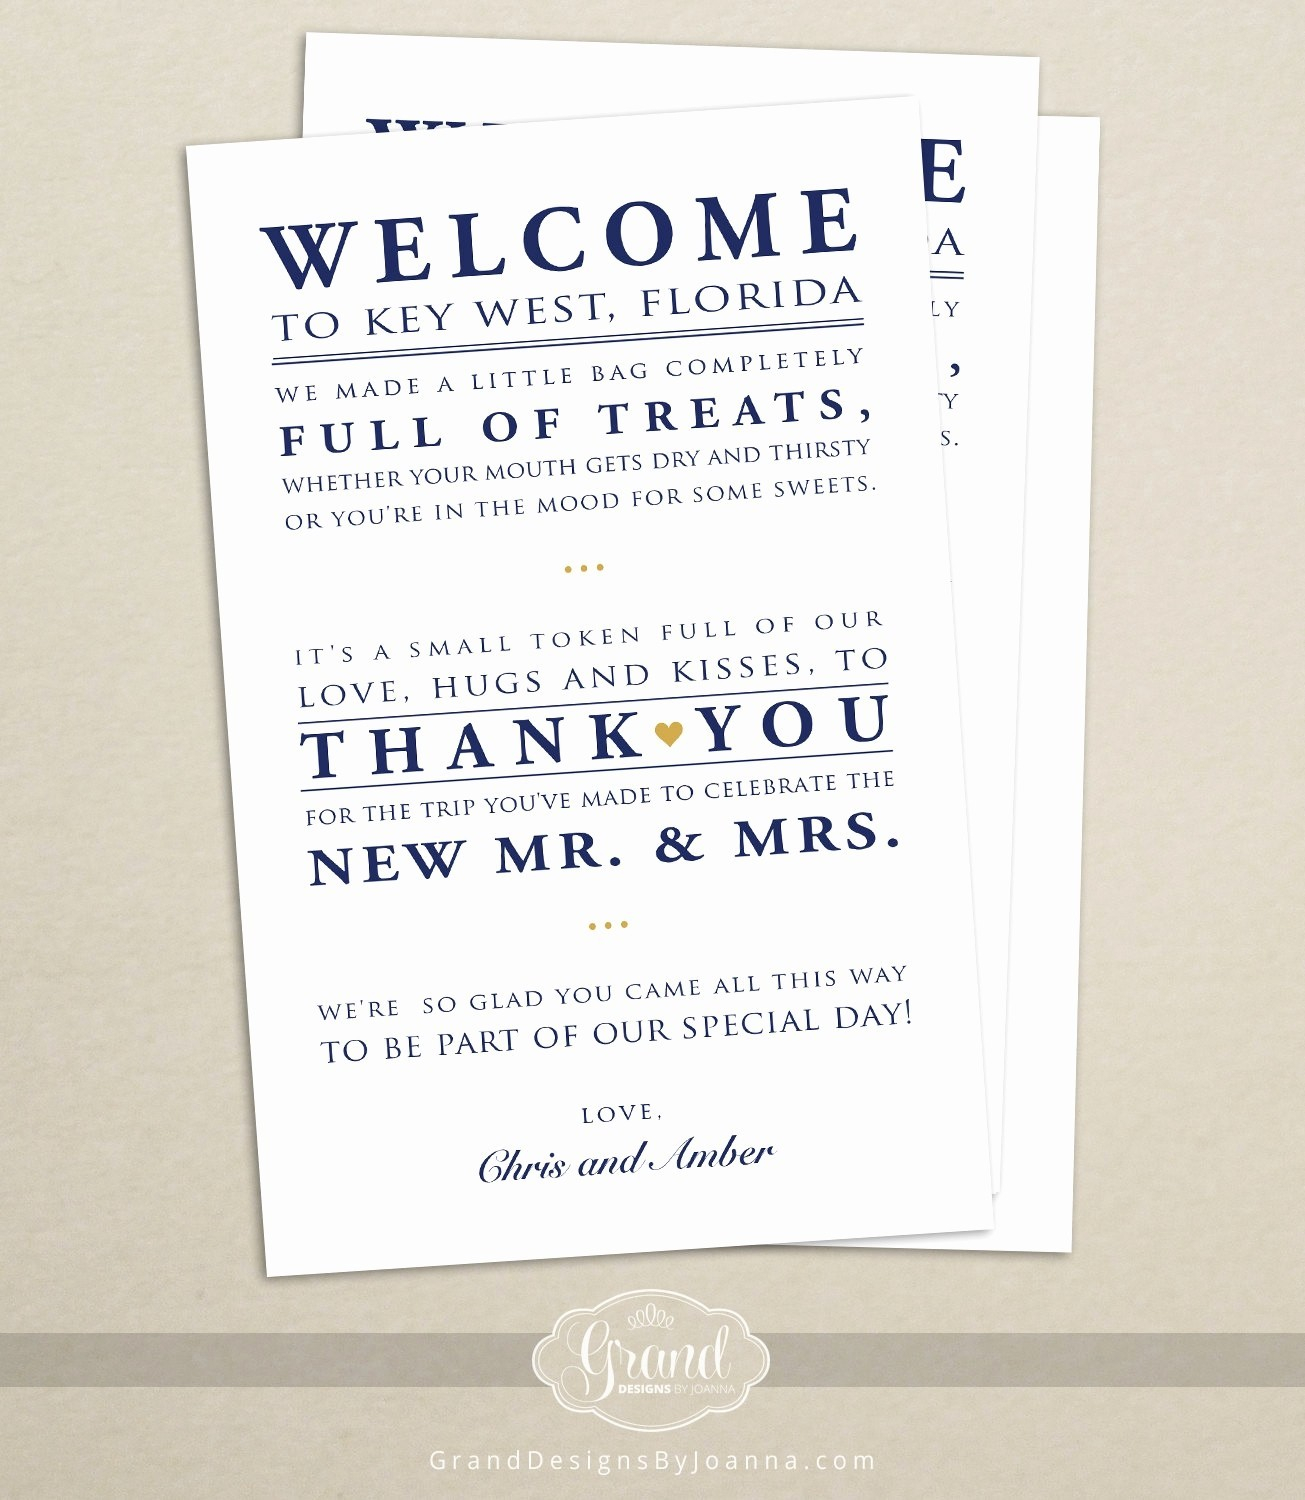 Welcome Letter Template for Wedding Guests - Wel E Letter for Hotel Guests Wedding